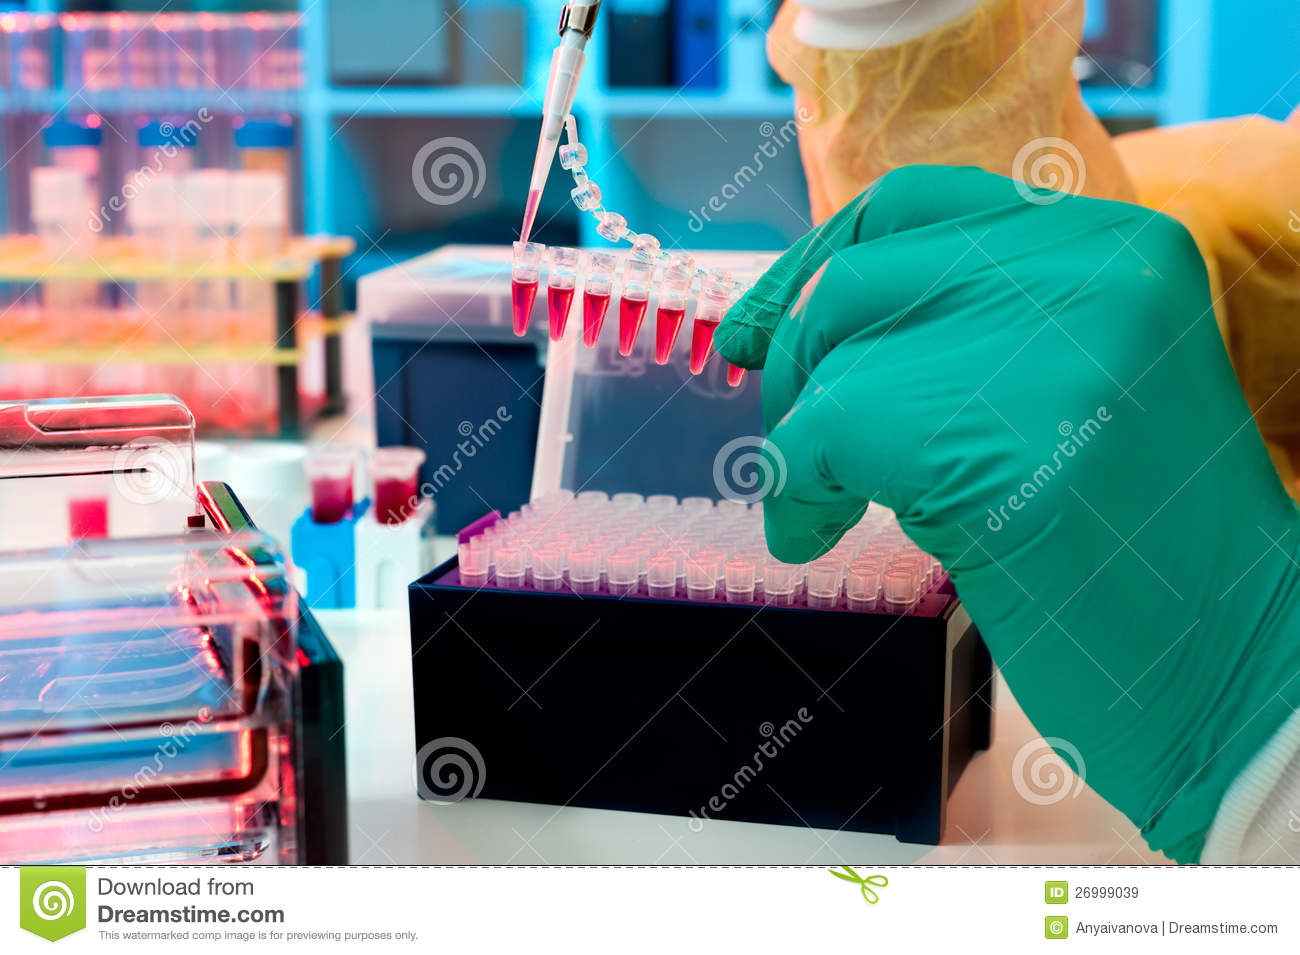 Molecular Biology In The Lab Stock Image